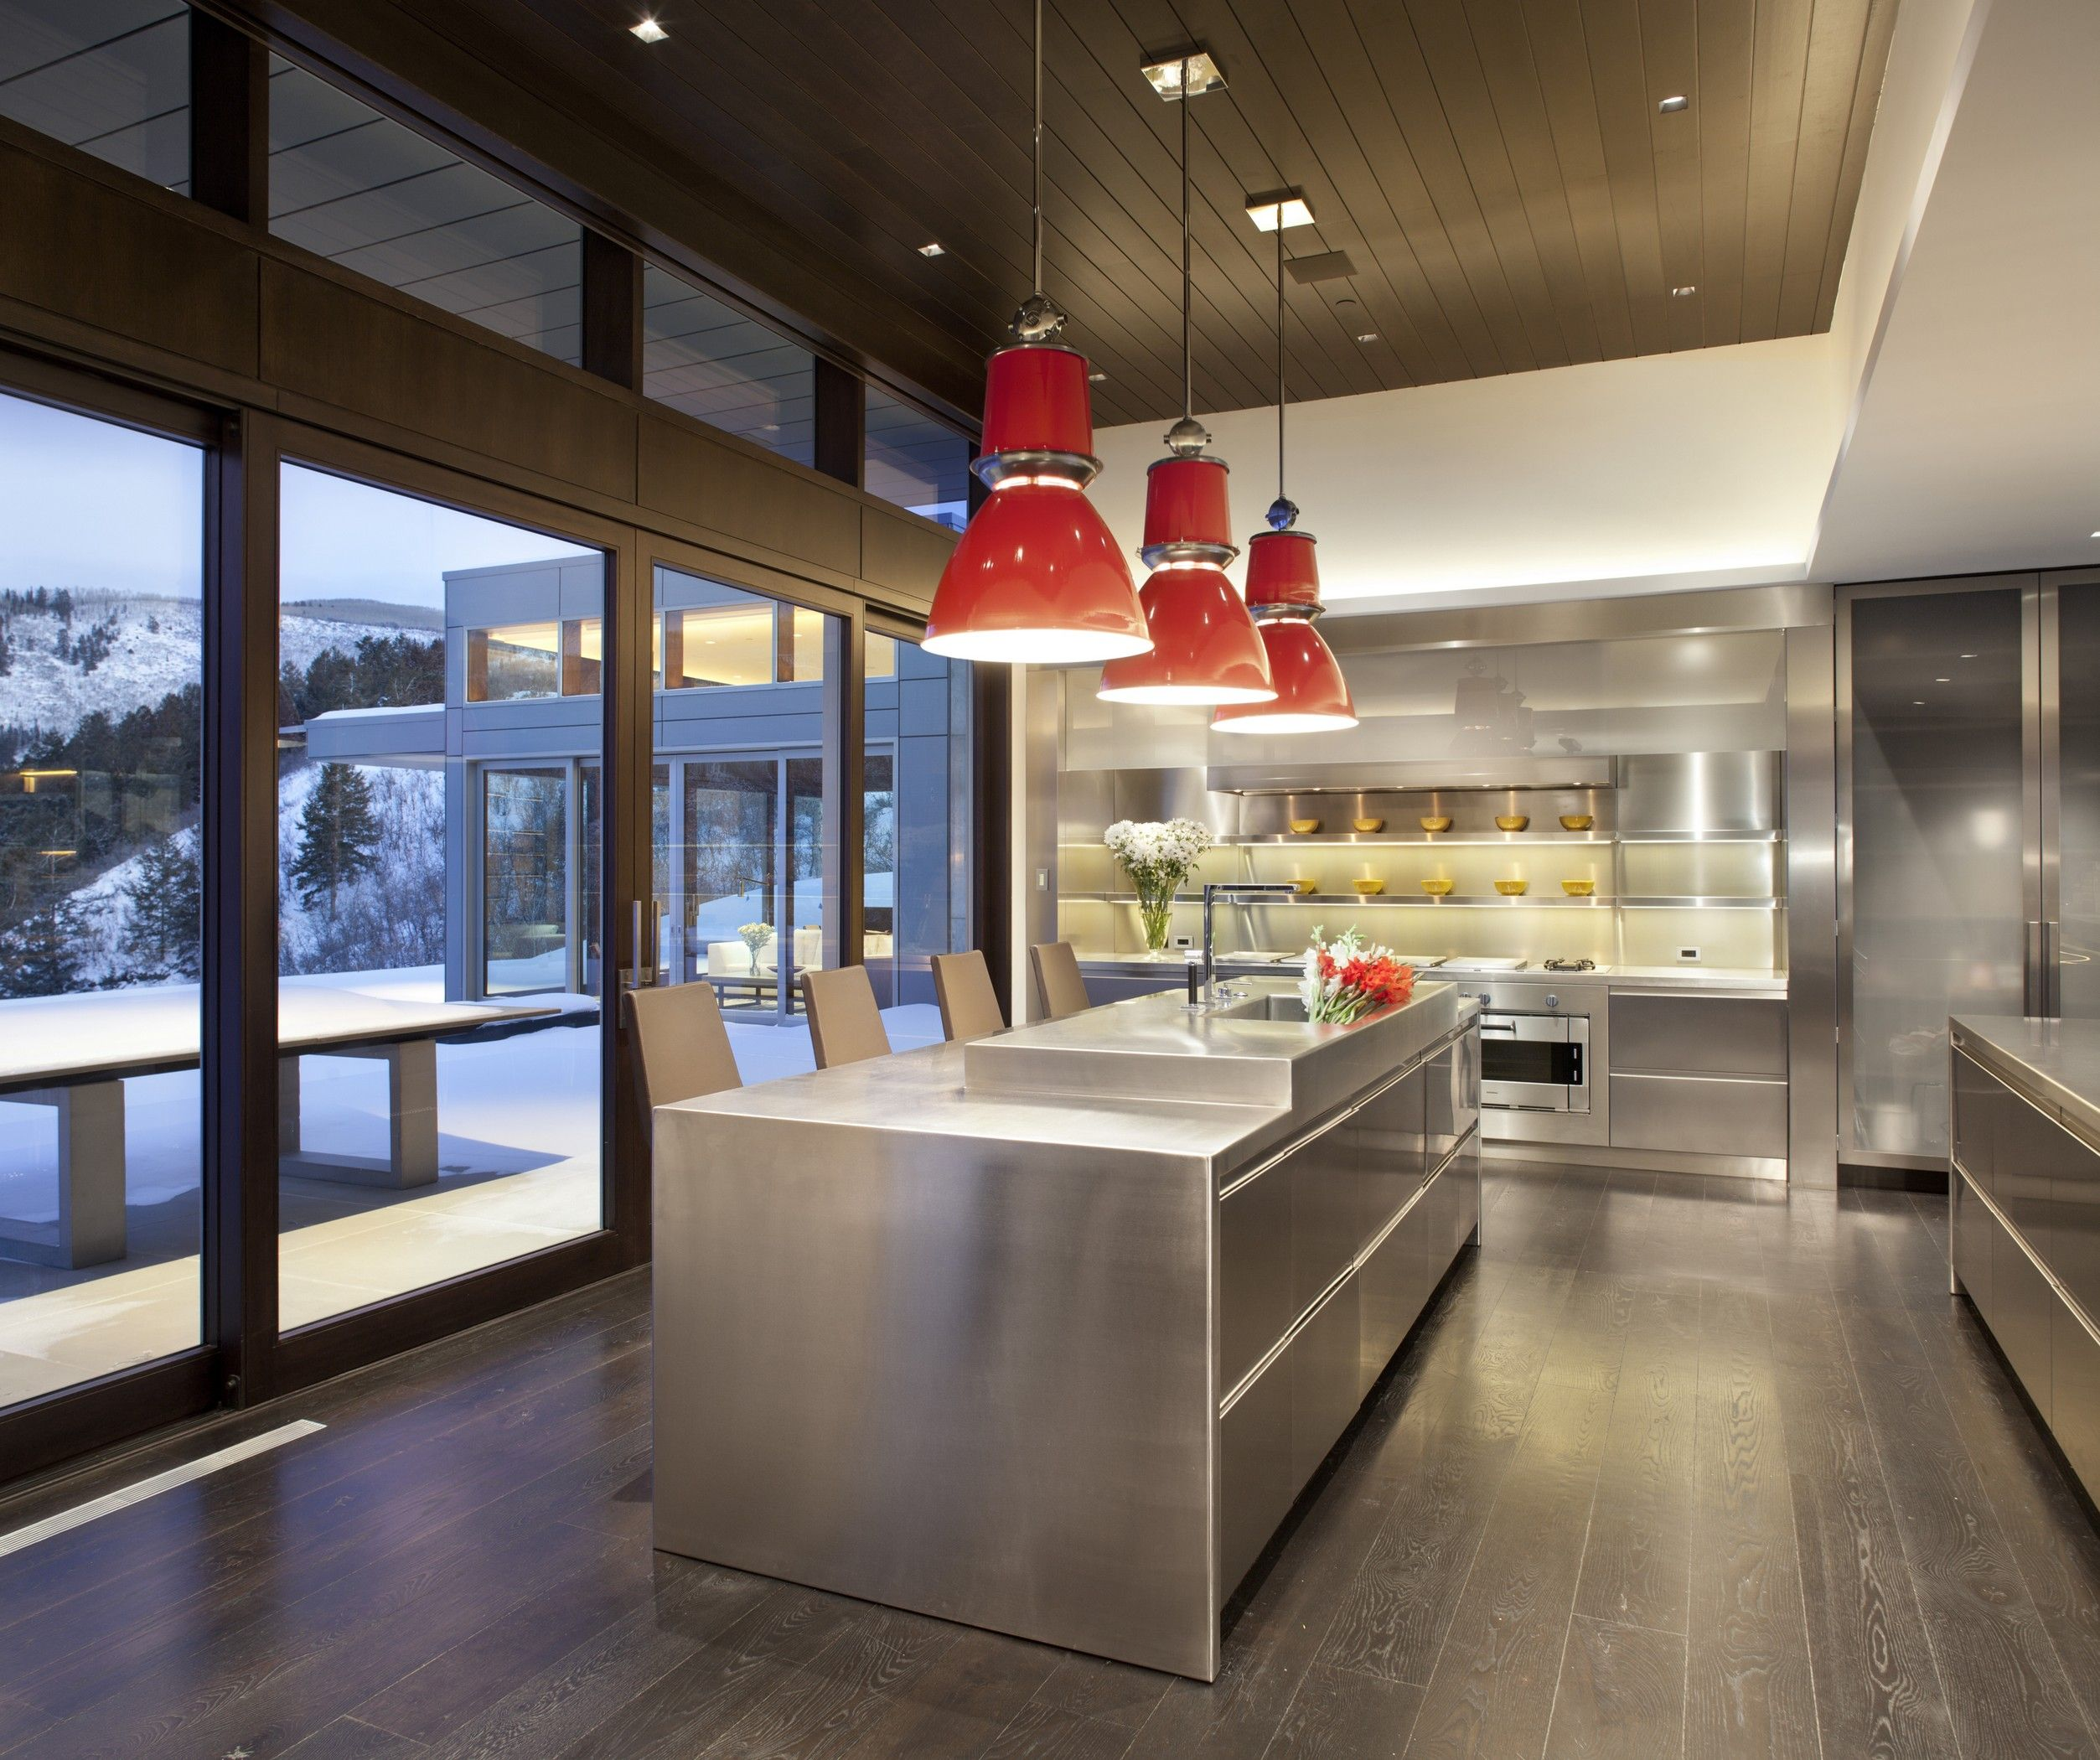 Private residence r34 by grabill windows and doors kitchen lighting design design kitchen